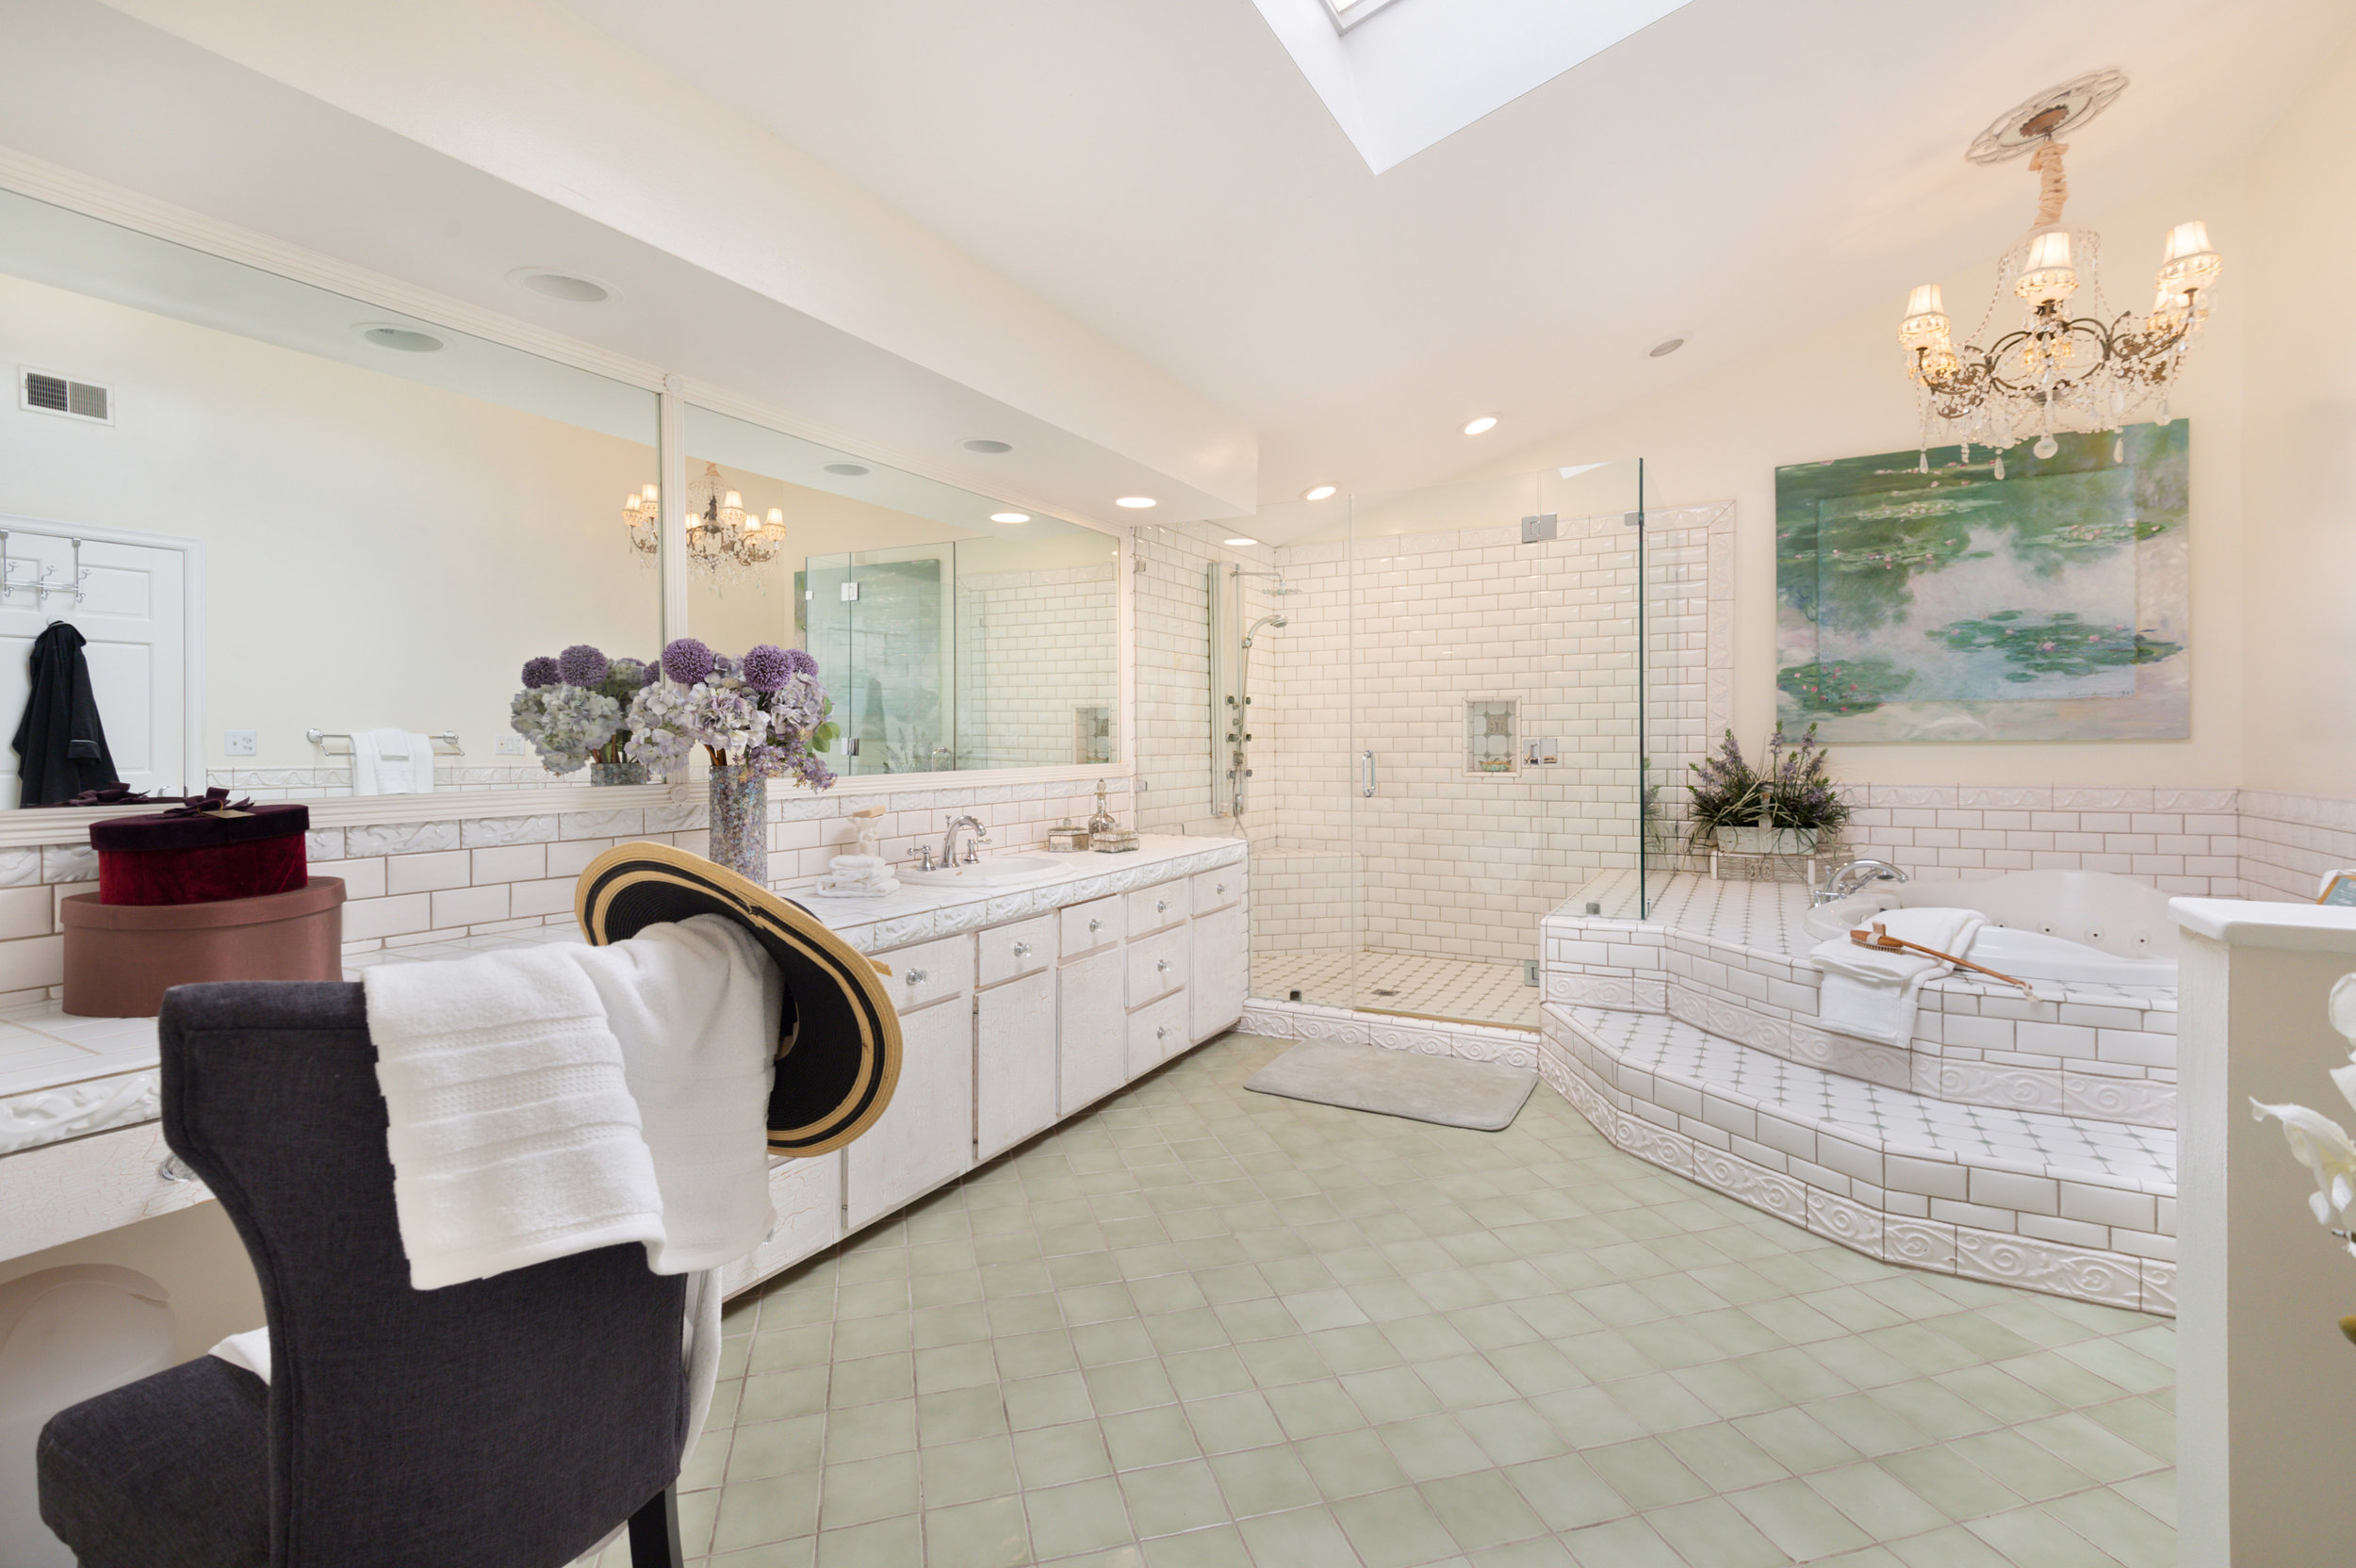 016 Master Bathroom 12027 Talus Place Beverly Hills 90210 For Sale Lease The Malibu Life Team Luxury Real Estate.jpg